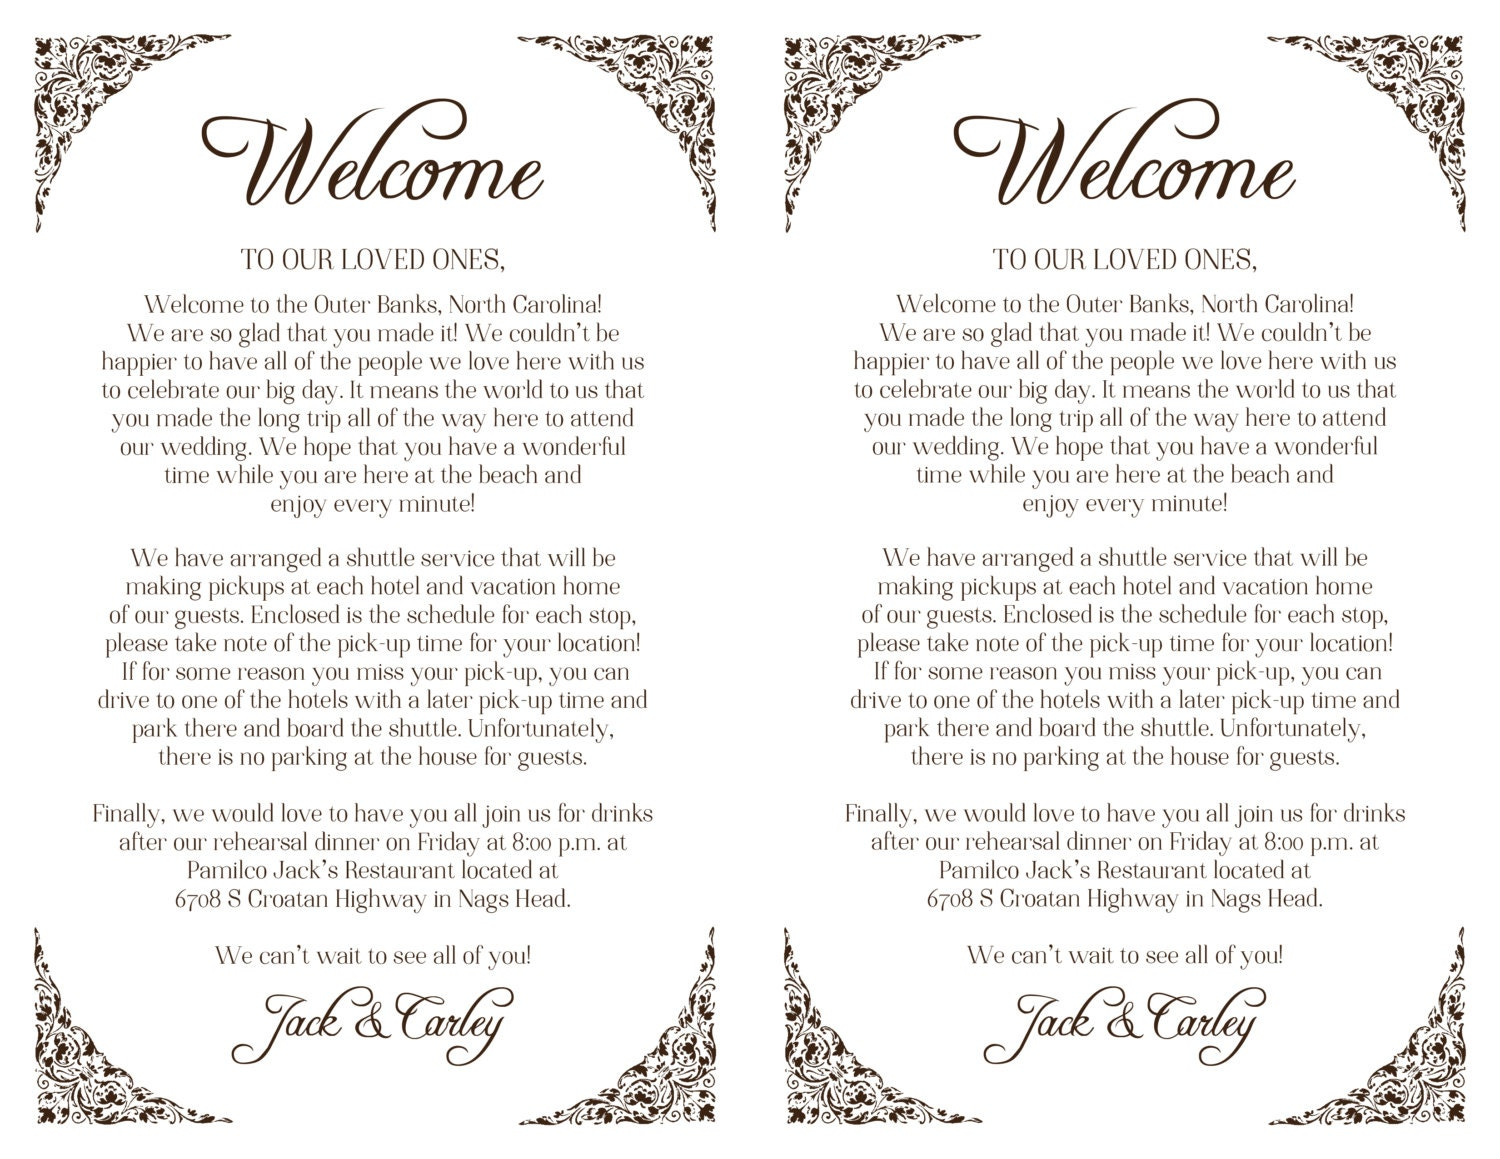 Wedding welcome letter template free vaydileforic wedding welcome letter template free welcome letter dinosauriens info wedding welcome letter template free maxwellsz